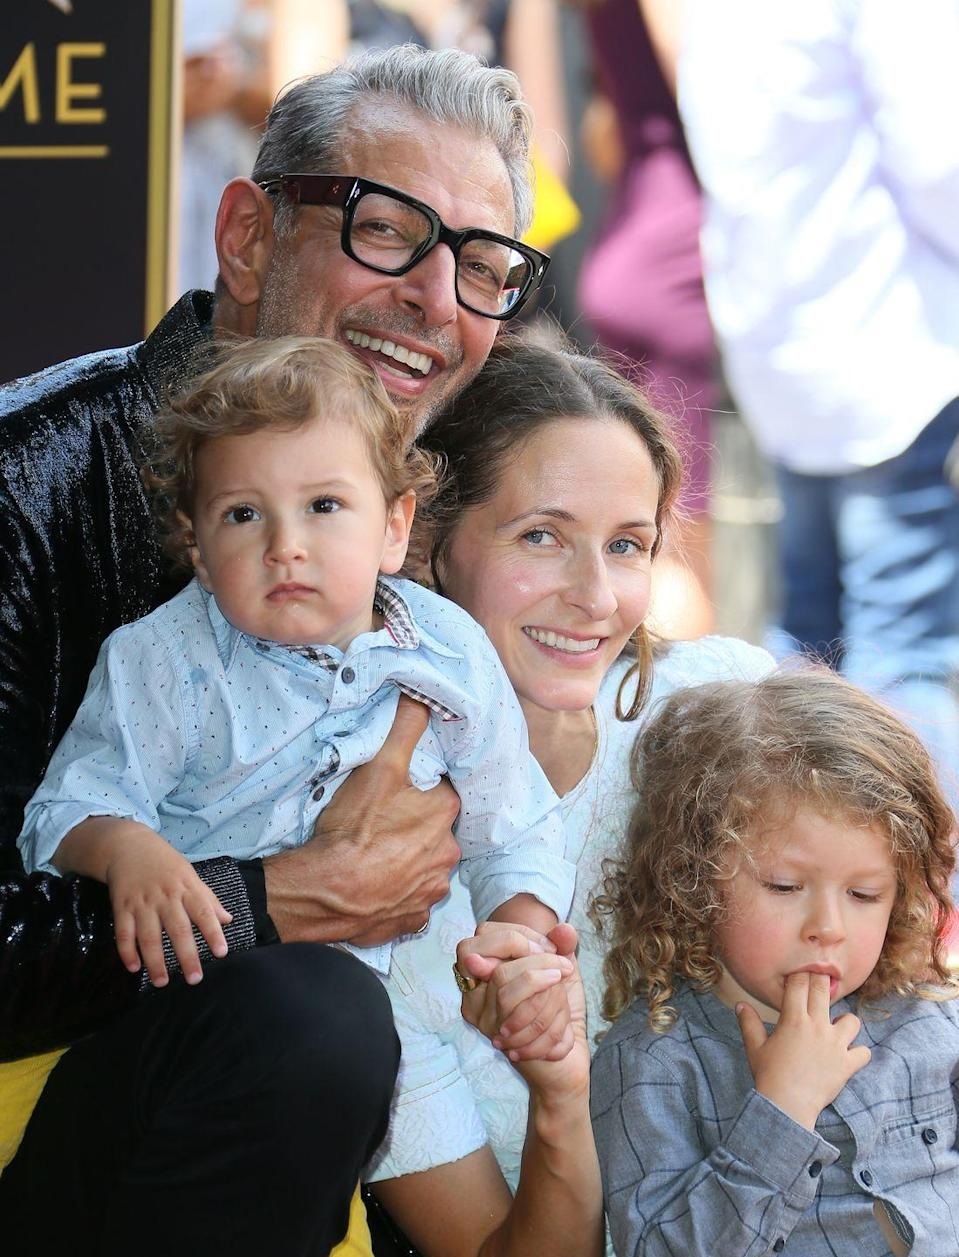 """<p><strong>Children</strong>: Charlie Ocean Goldblum (4) and River Joe Goldblum (3)</p><p>Although the 67-year-old actor became a dad later in life, he """"wildly appreciates"""" his fatherhood experience said that he feels """"right on schedule,"""" in a 2018 <a href=""""https://www.usmagazine.com/celebrity-moms/news/jeff-goldblum-opens-up-about-being-an-older-dad/"""" rel=""""nofollow noopener"""" target=""""_blank"""" data-ylk=""""slk:interview with Us Weekly"""" class=""""link rapid-noclick-resp"""">interview with <em>Us Weekly</em></a>. </p>"""